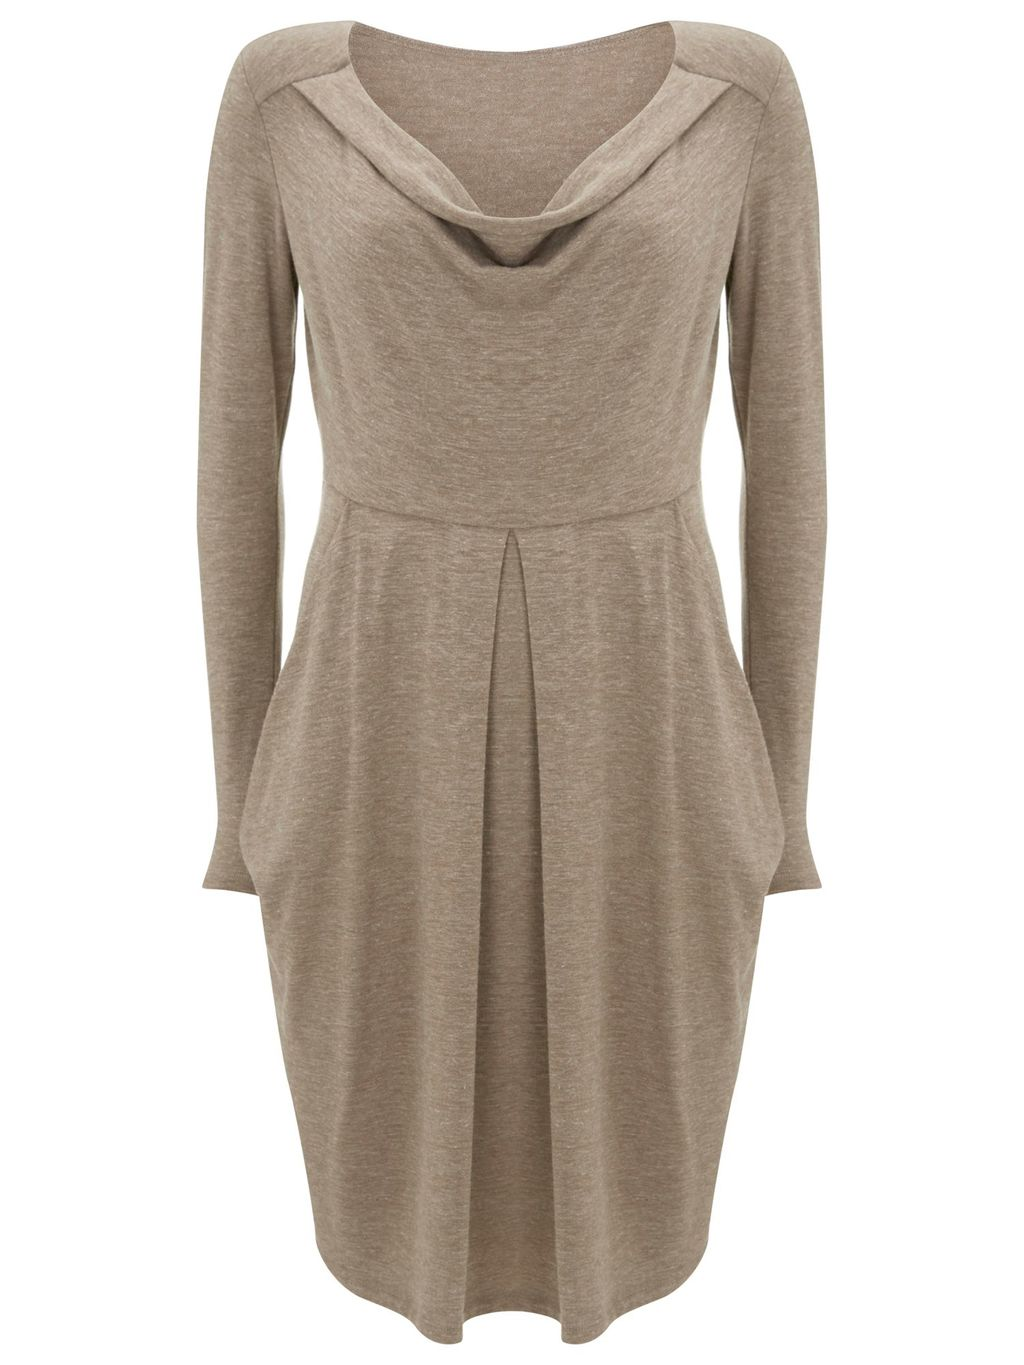 Hoxton Knitted Dress, Beige - style: jumper dress; neckline: cowl/draped neck; pattern: plain; predominant colour: stone; occasions: casual; length: just above the knee; fit: body skimming; fibres: polyester/polyamide - stretch; hip detail: adds bulk at the hips; sleeve length: long sleeve; sleeve style: standard; pattern type: fabric; texture group: jersey - stretchy/drapey; season: s/s 2016; wardrobe: basic